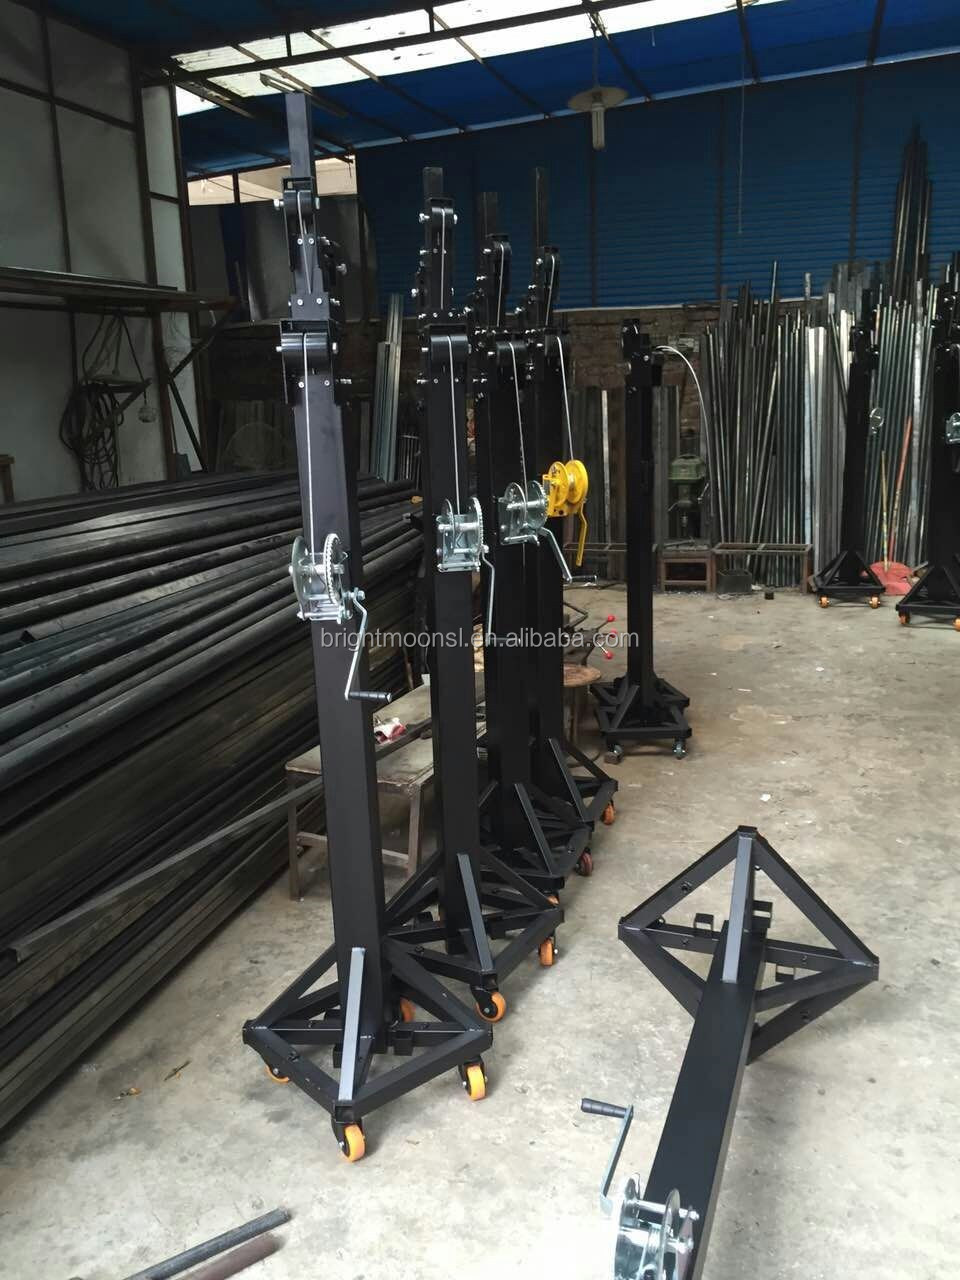 High qaulity heavy duty 250kg dj booth stand 6.5m telescopic truss stand professional tower